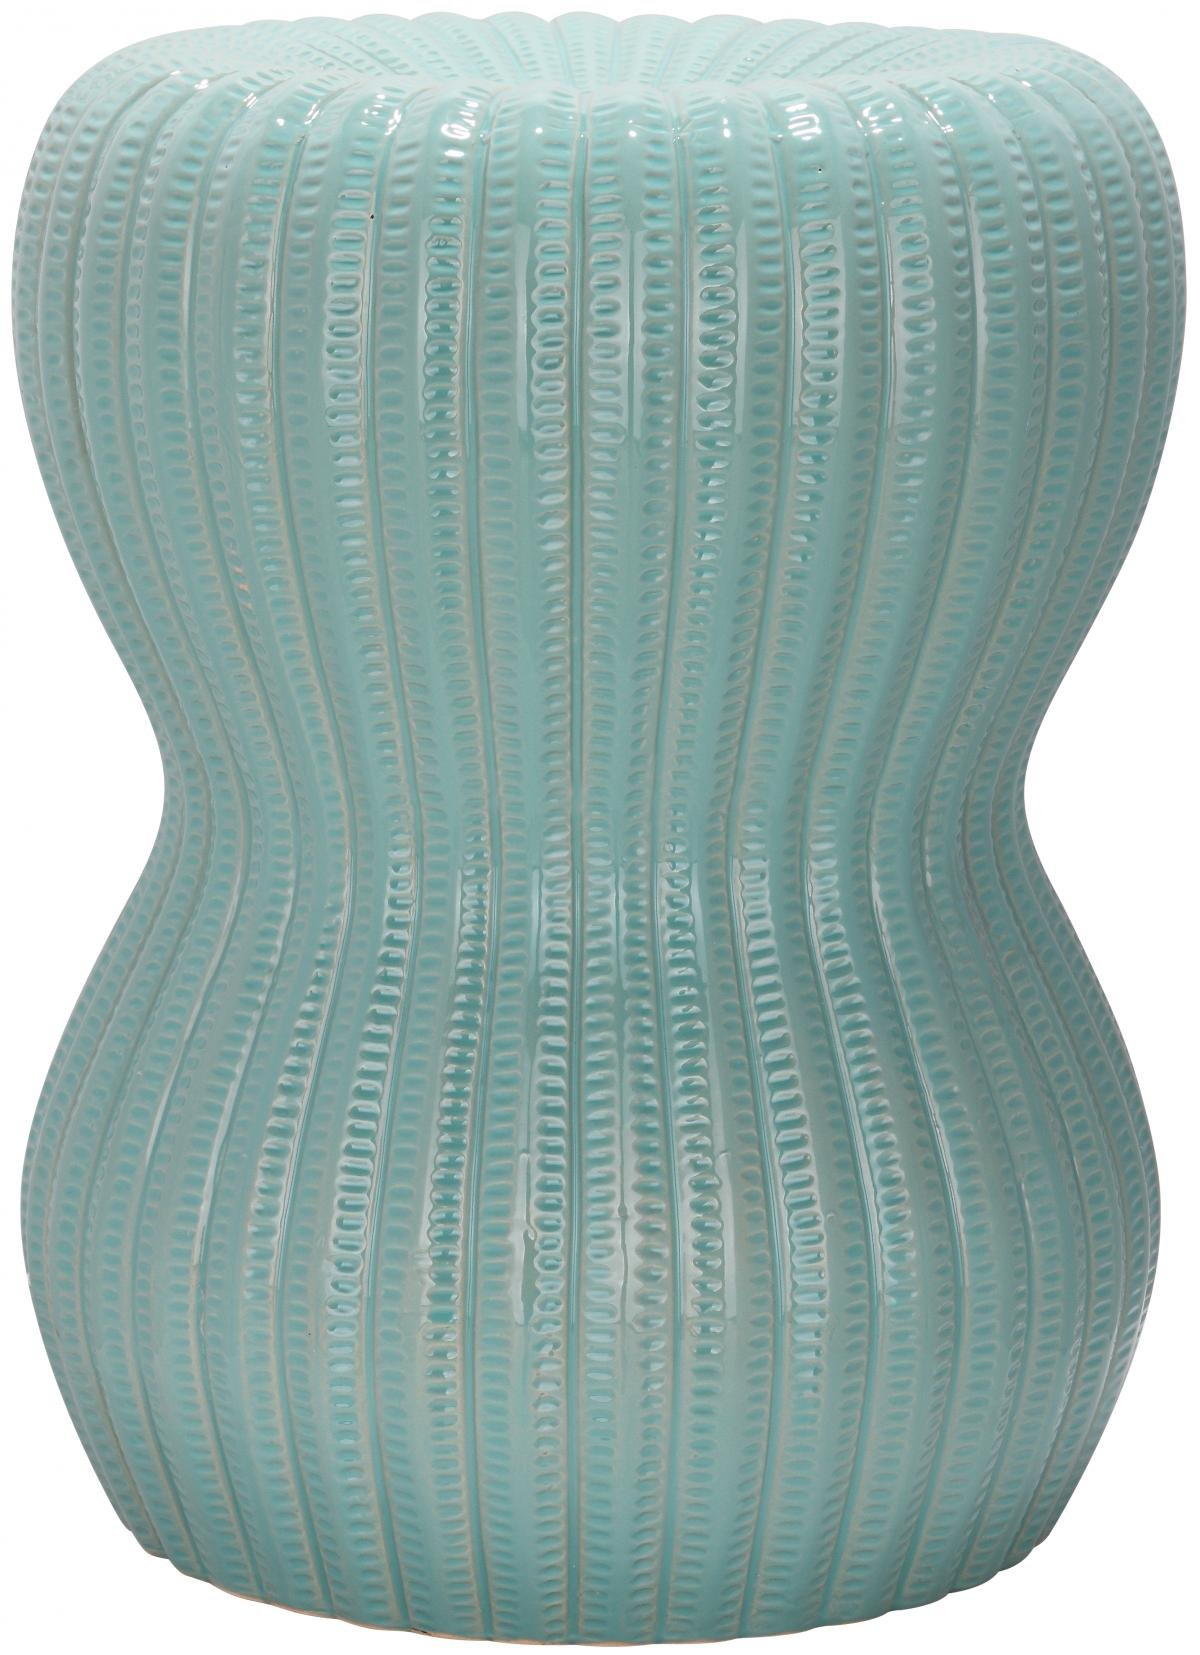 Groovy Details About Safavieh Castle Gardens Collection Hour Glass Ceramic Garden Stool Light Aqua Andrewgaddart Wooden Chair Designs For Living Room Andrewgaddartcom